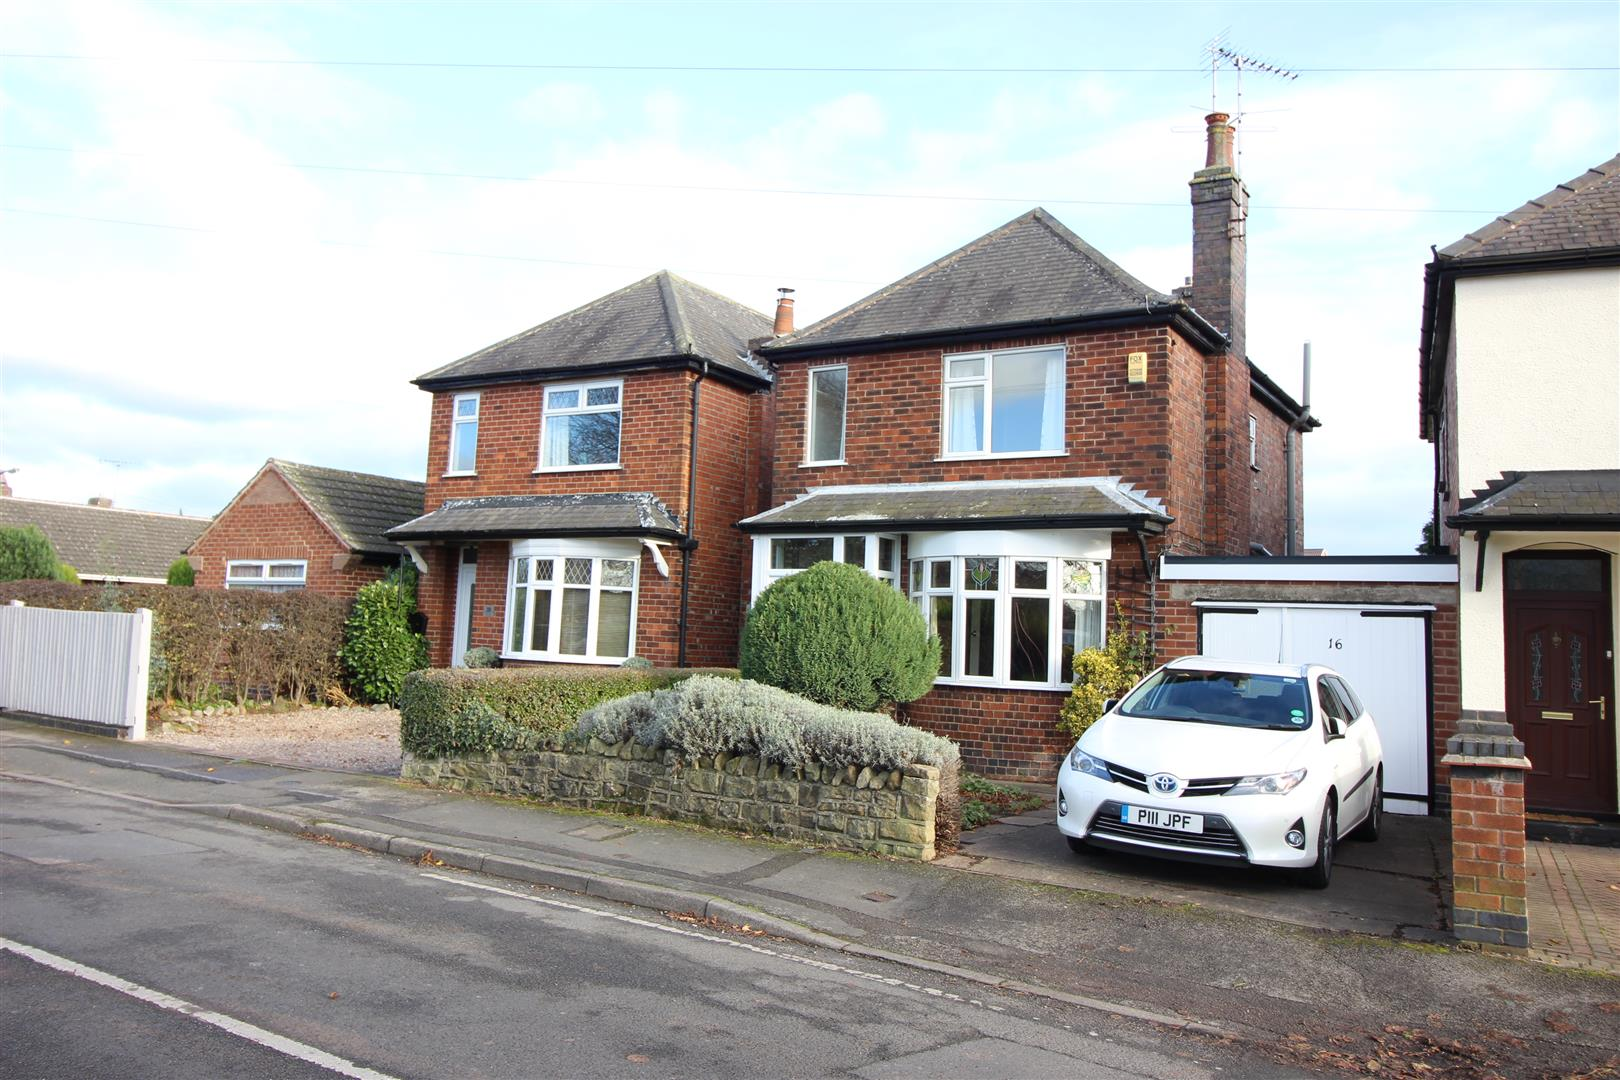 2 Bedrooms Detached House for sale in Albert Road, Sandiacre